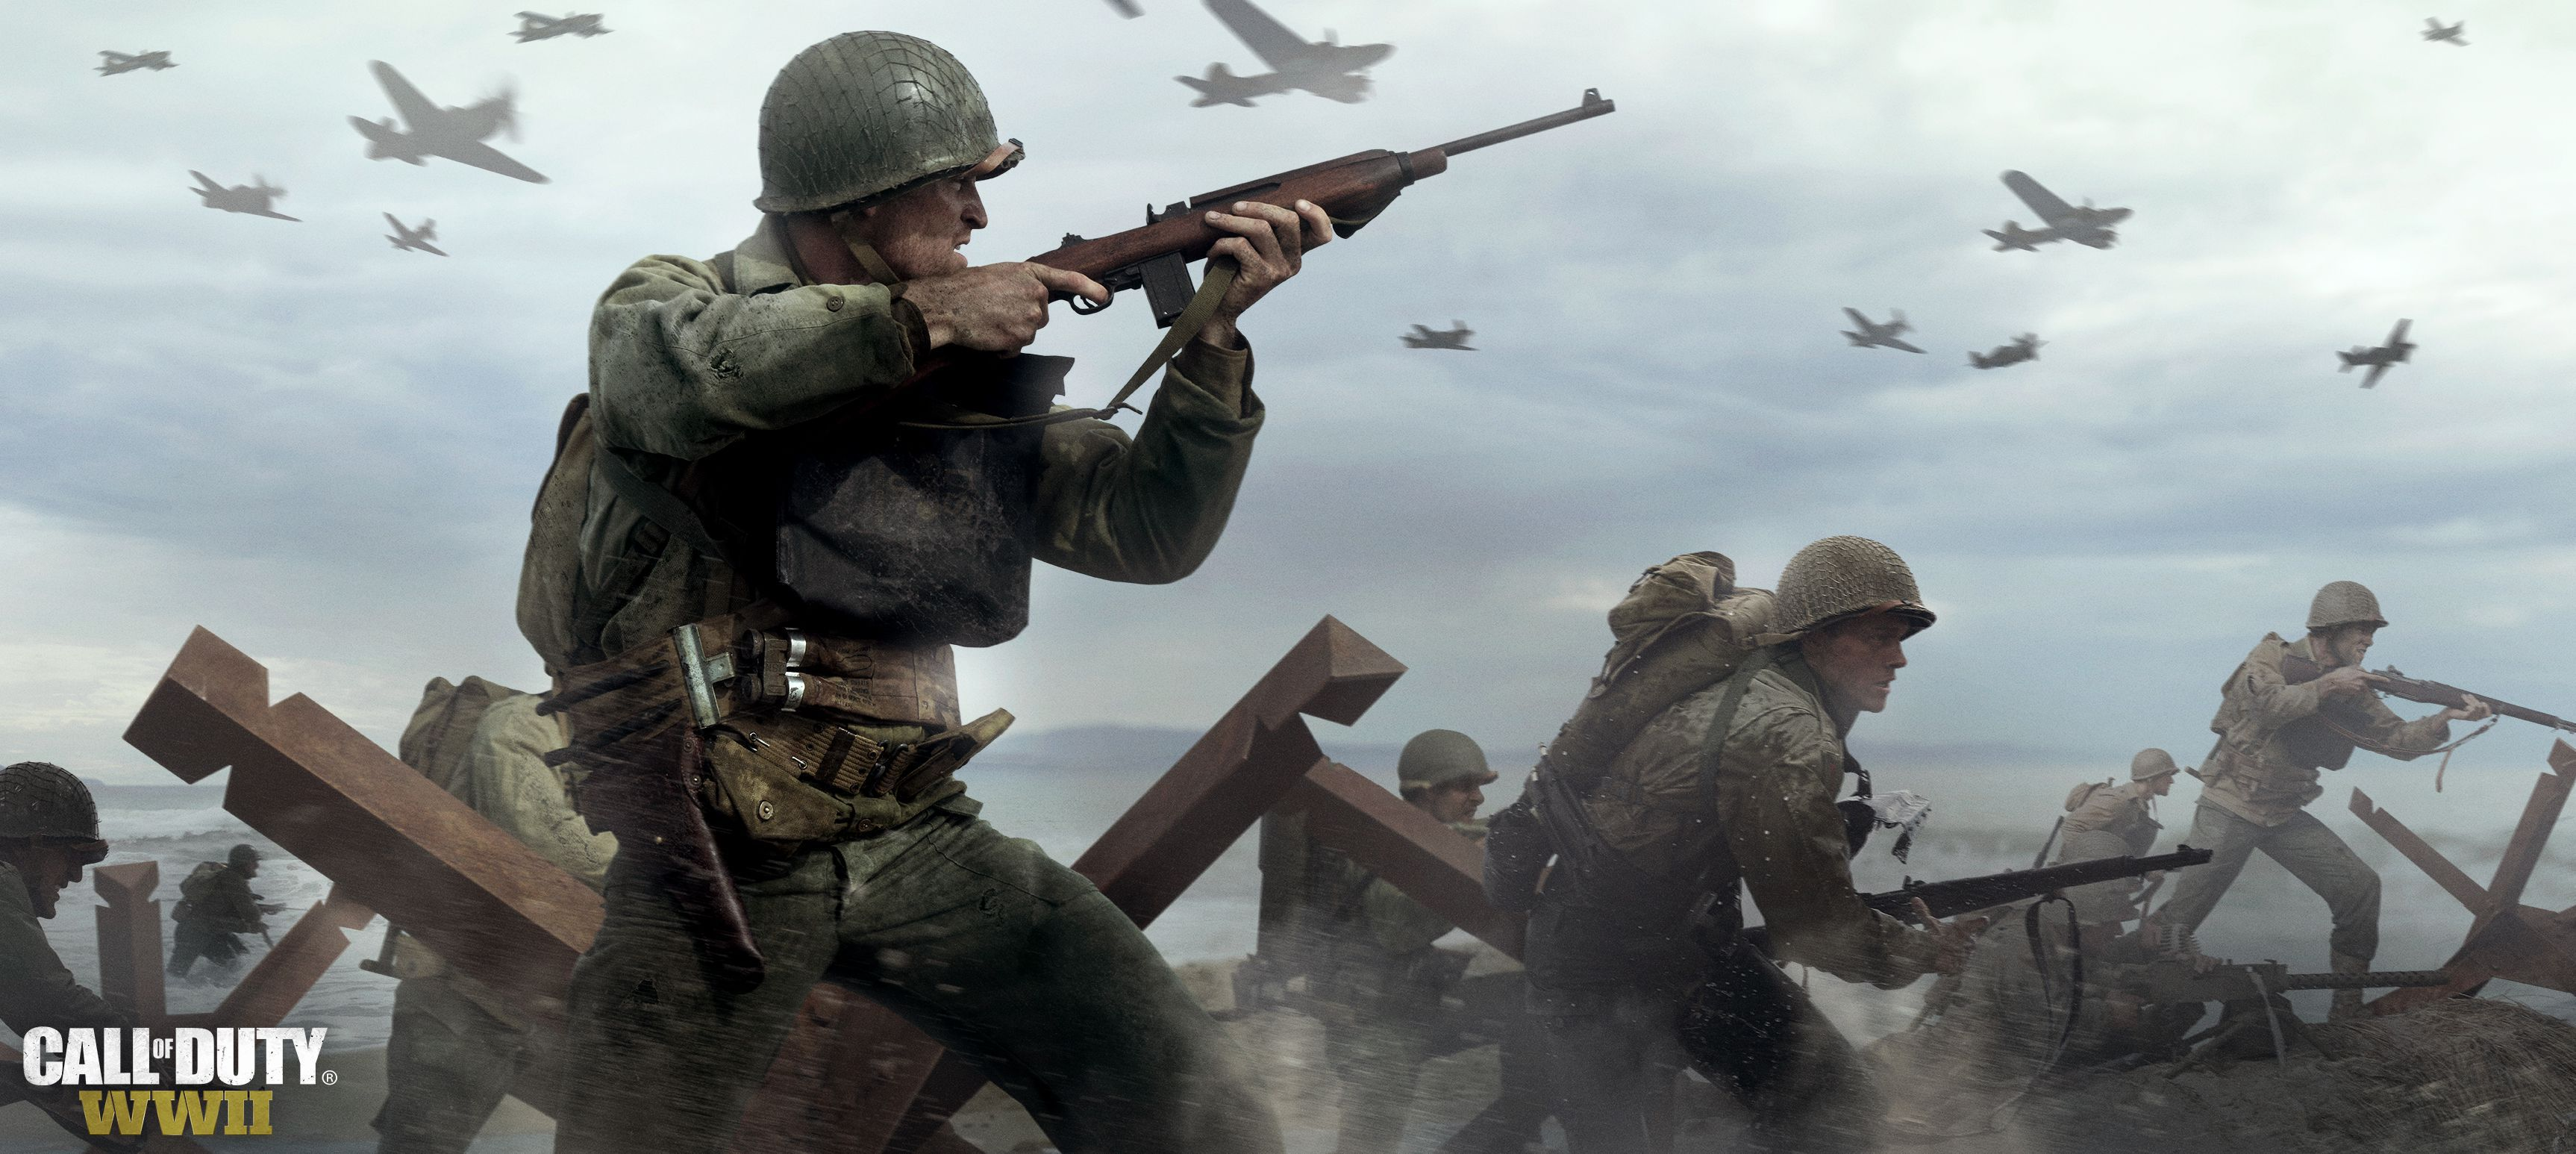 Picture Call Of Duty Ww2